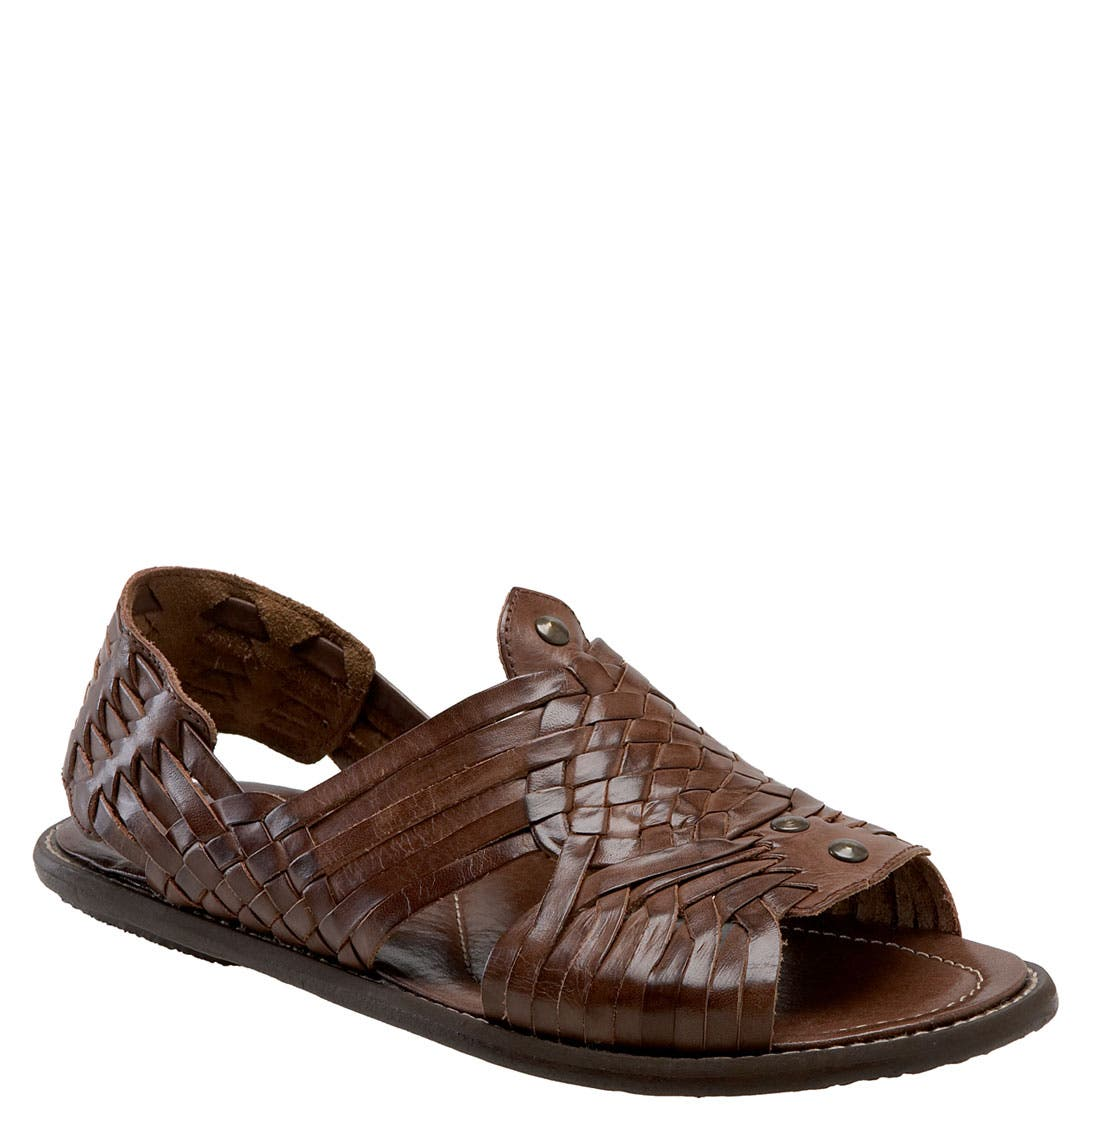 Main Image - Bed Stu 'El Duque' Sandal (Men)